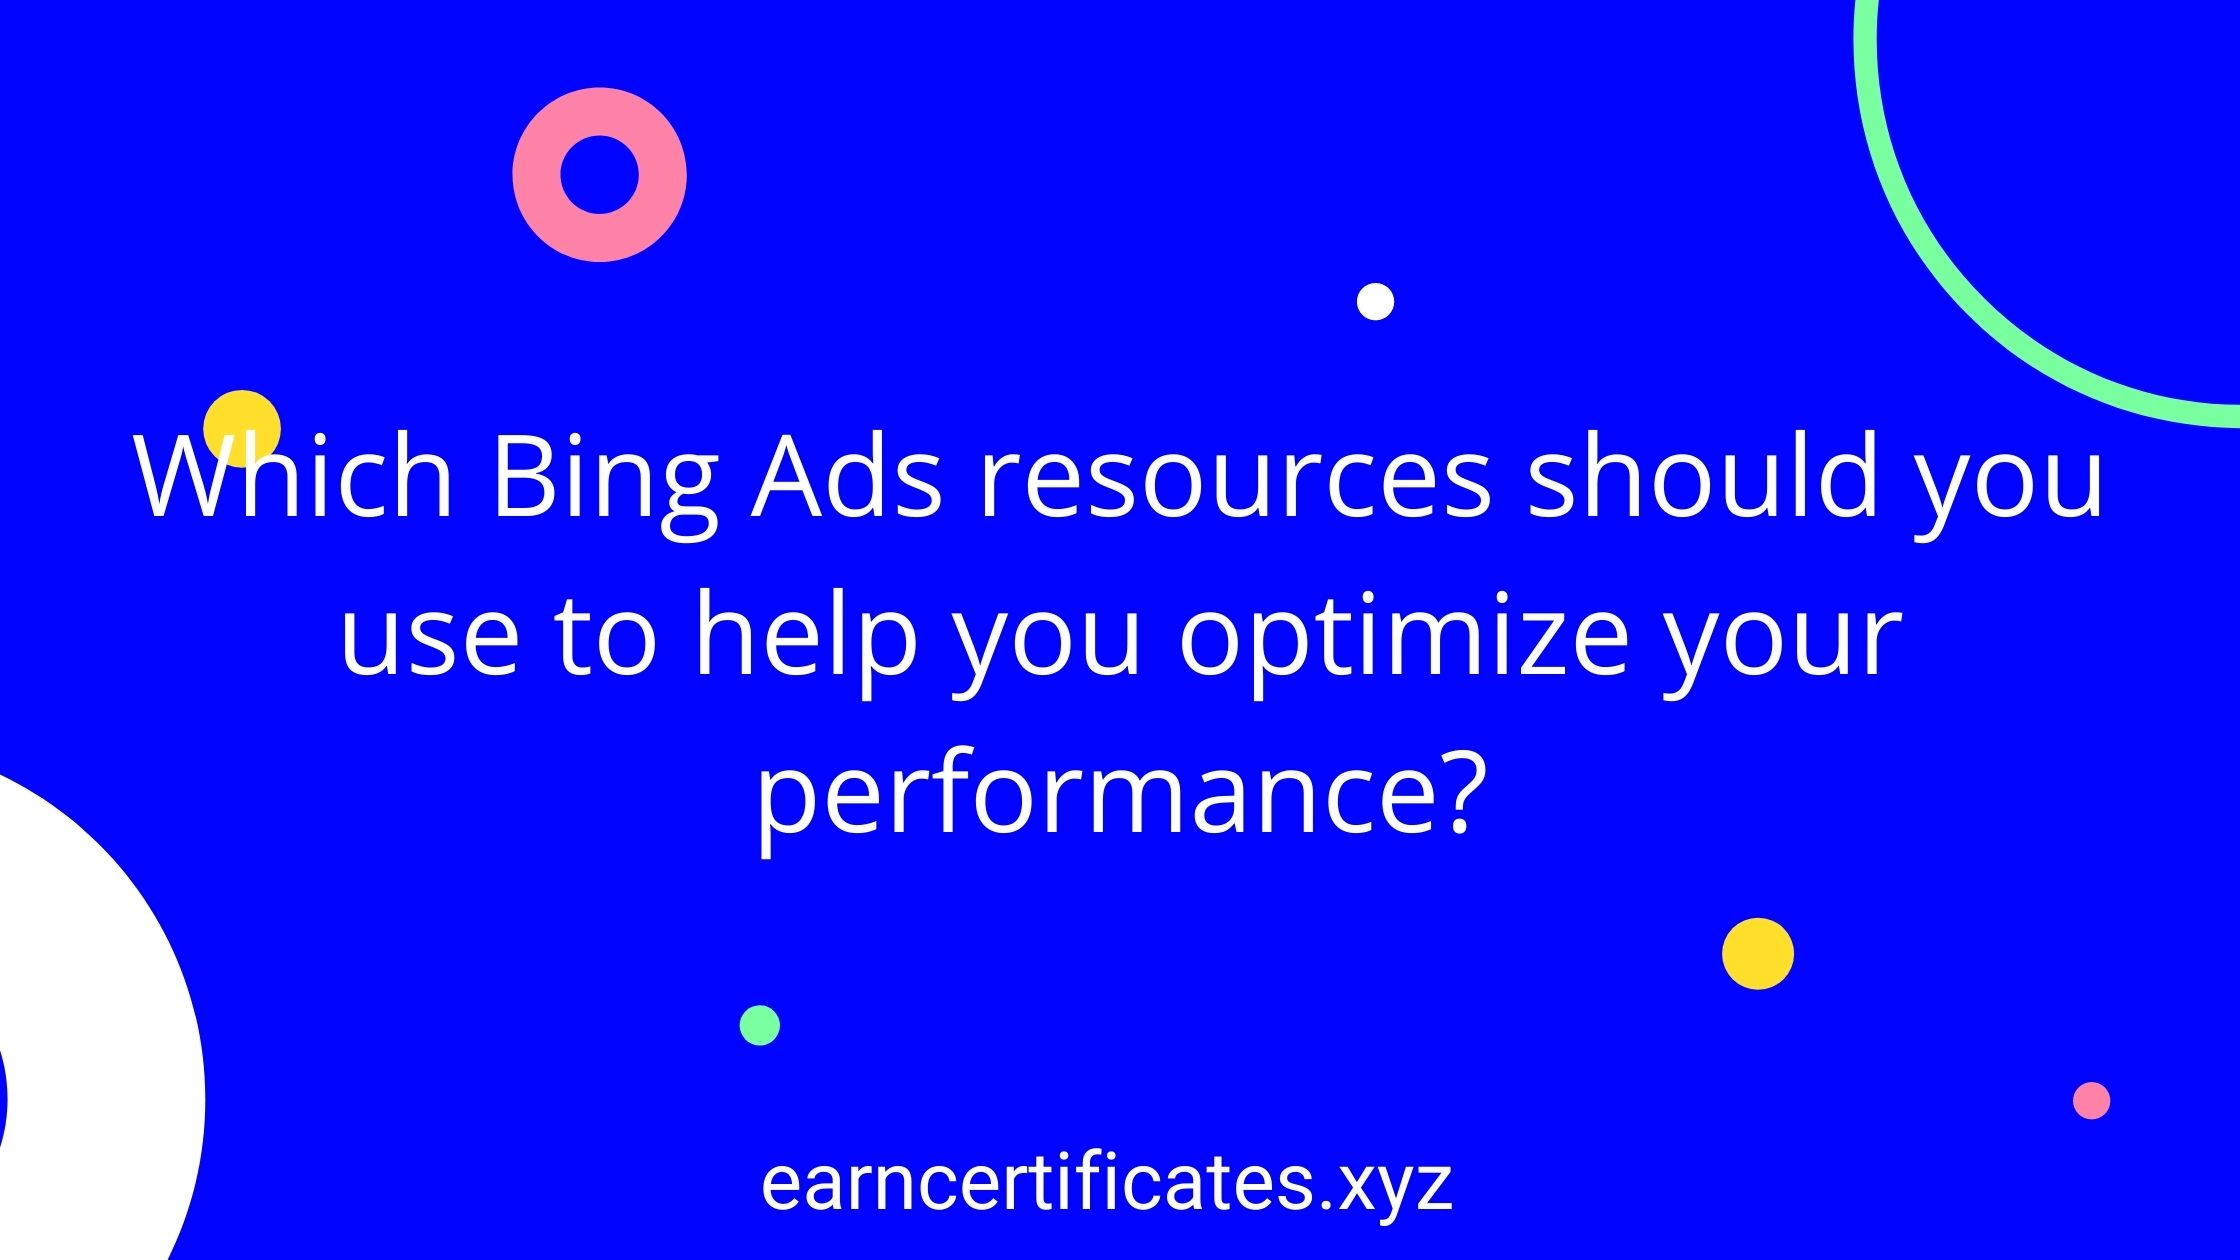 Which Bing Ads resources should you use to help you optimize your performance?